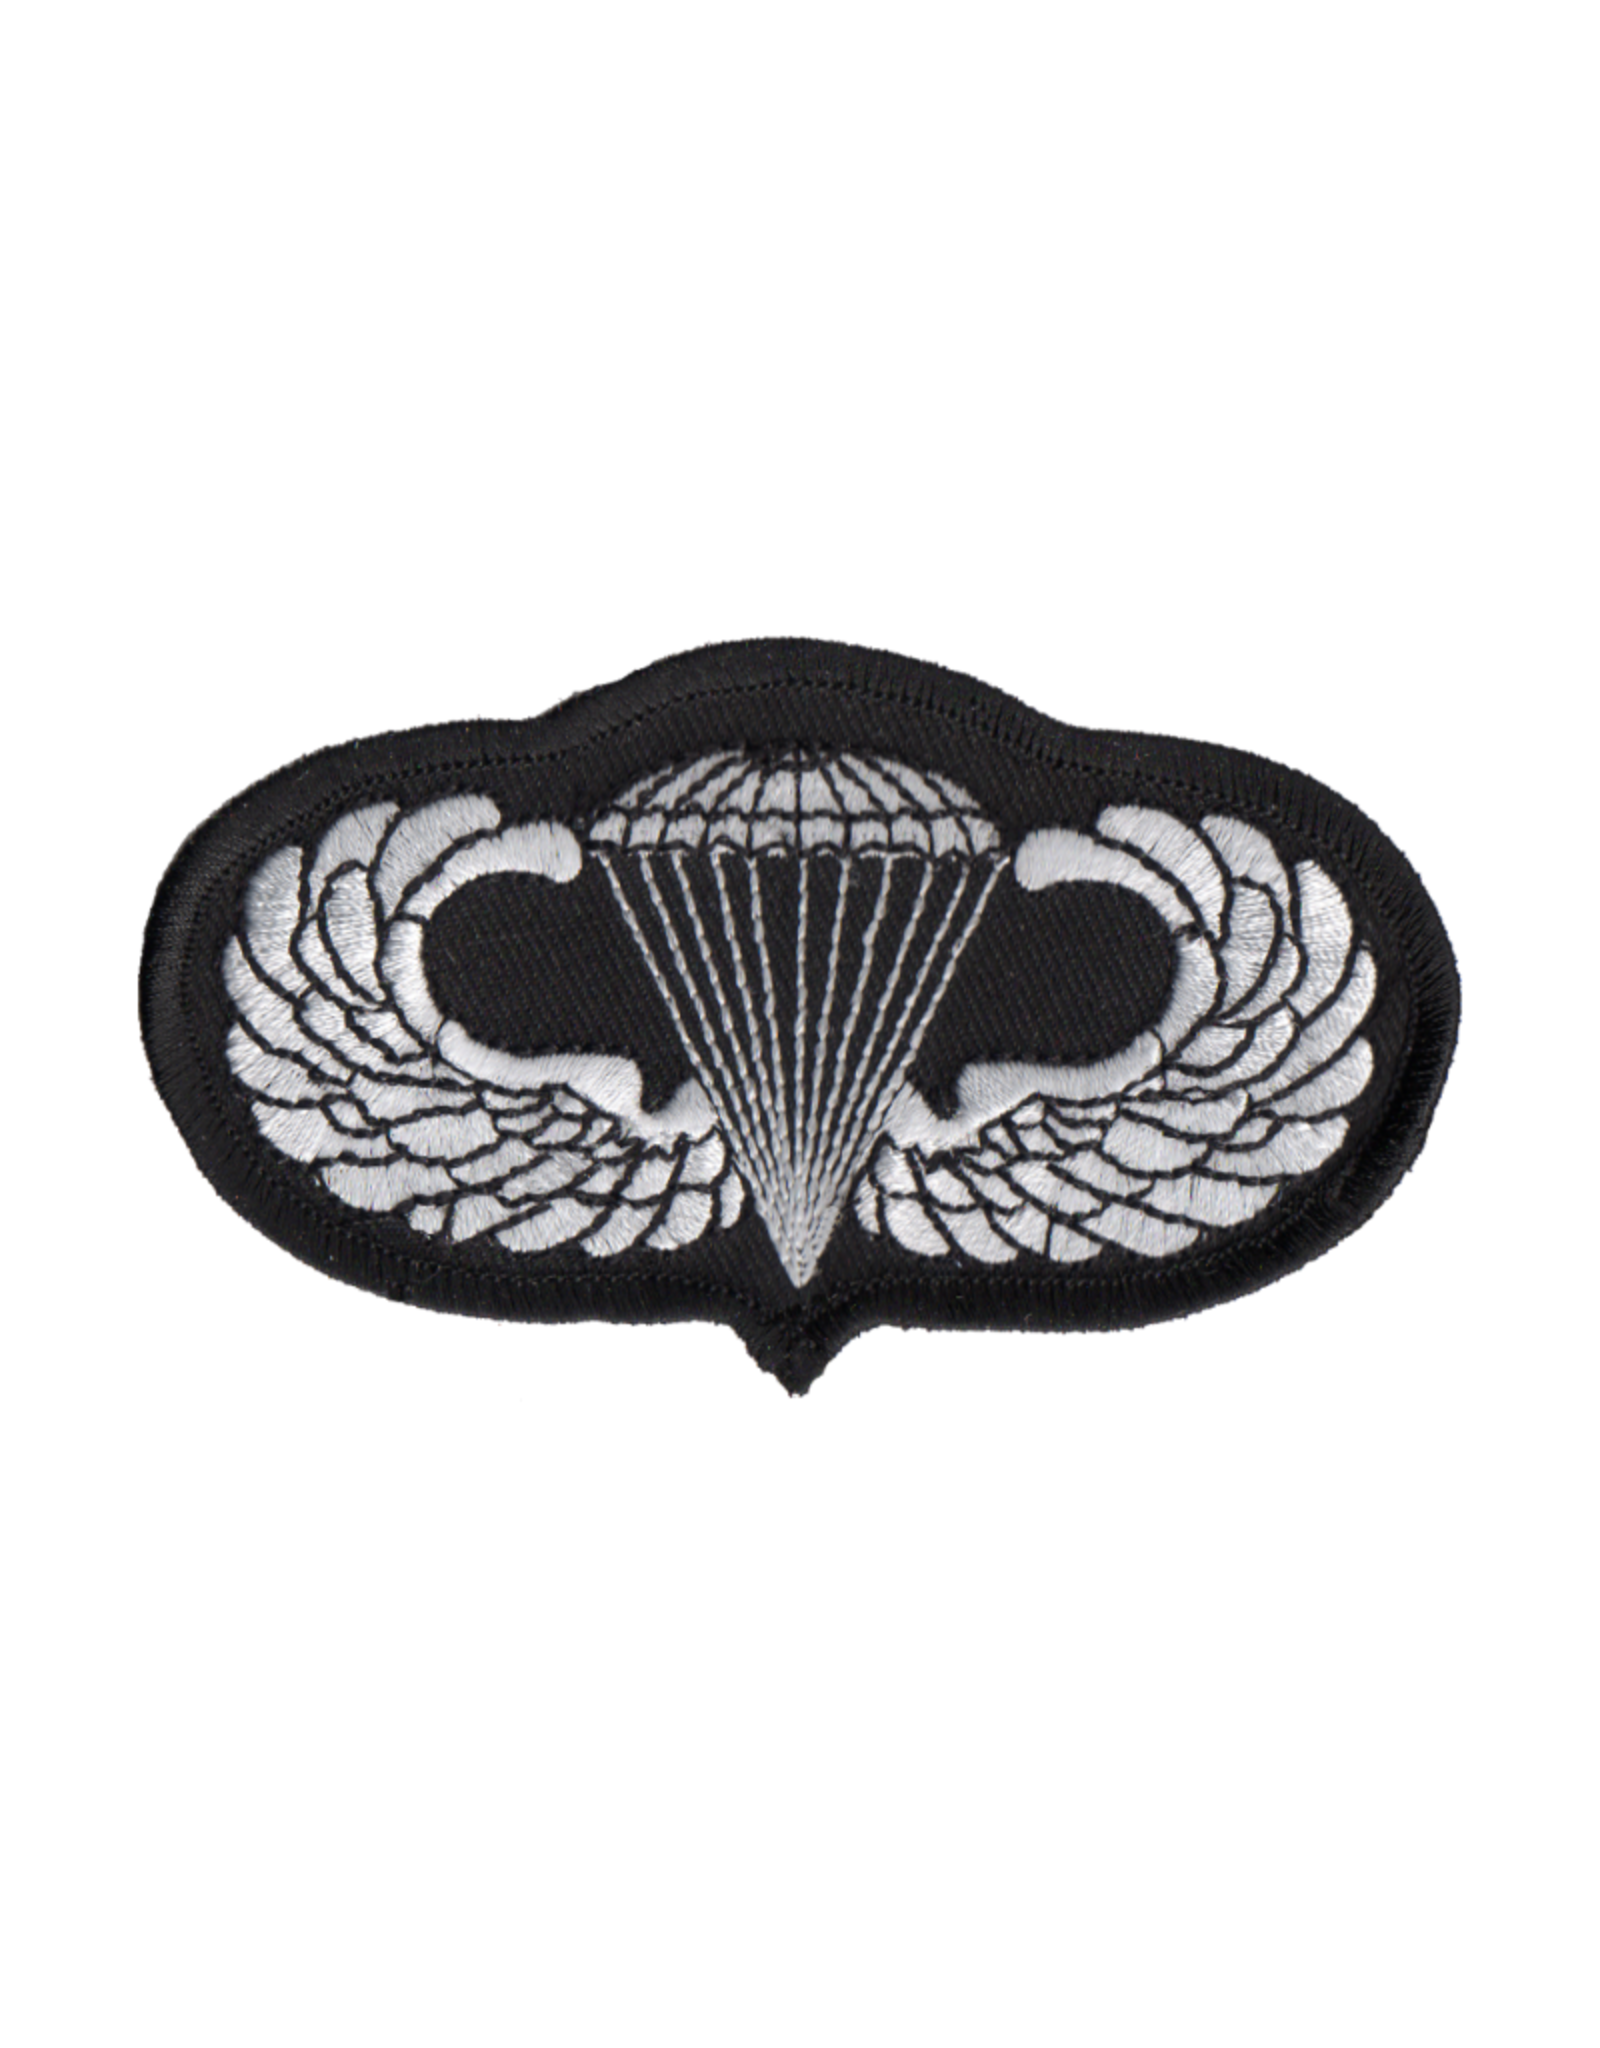 "MidMil Embroidered Parachutist Wings Patch 4.1"" wide x 2.3"" high"